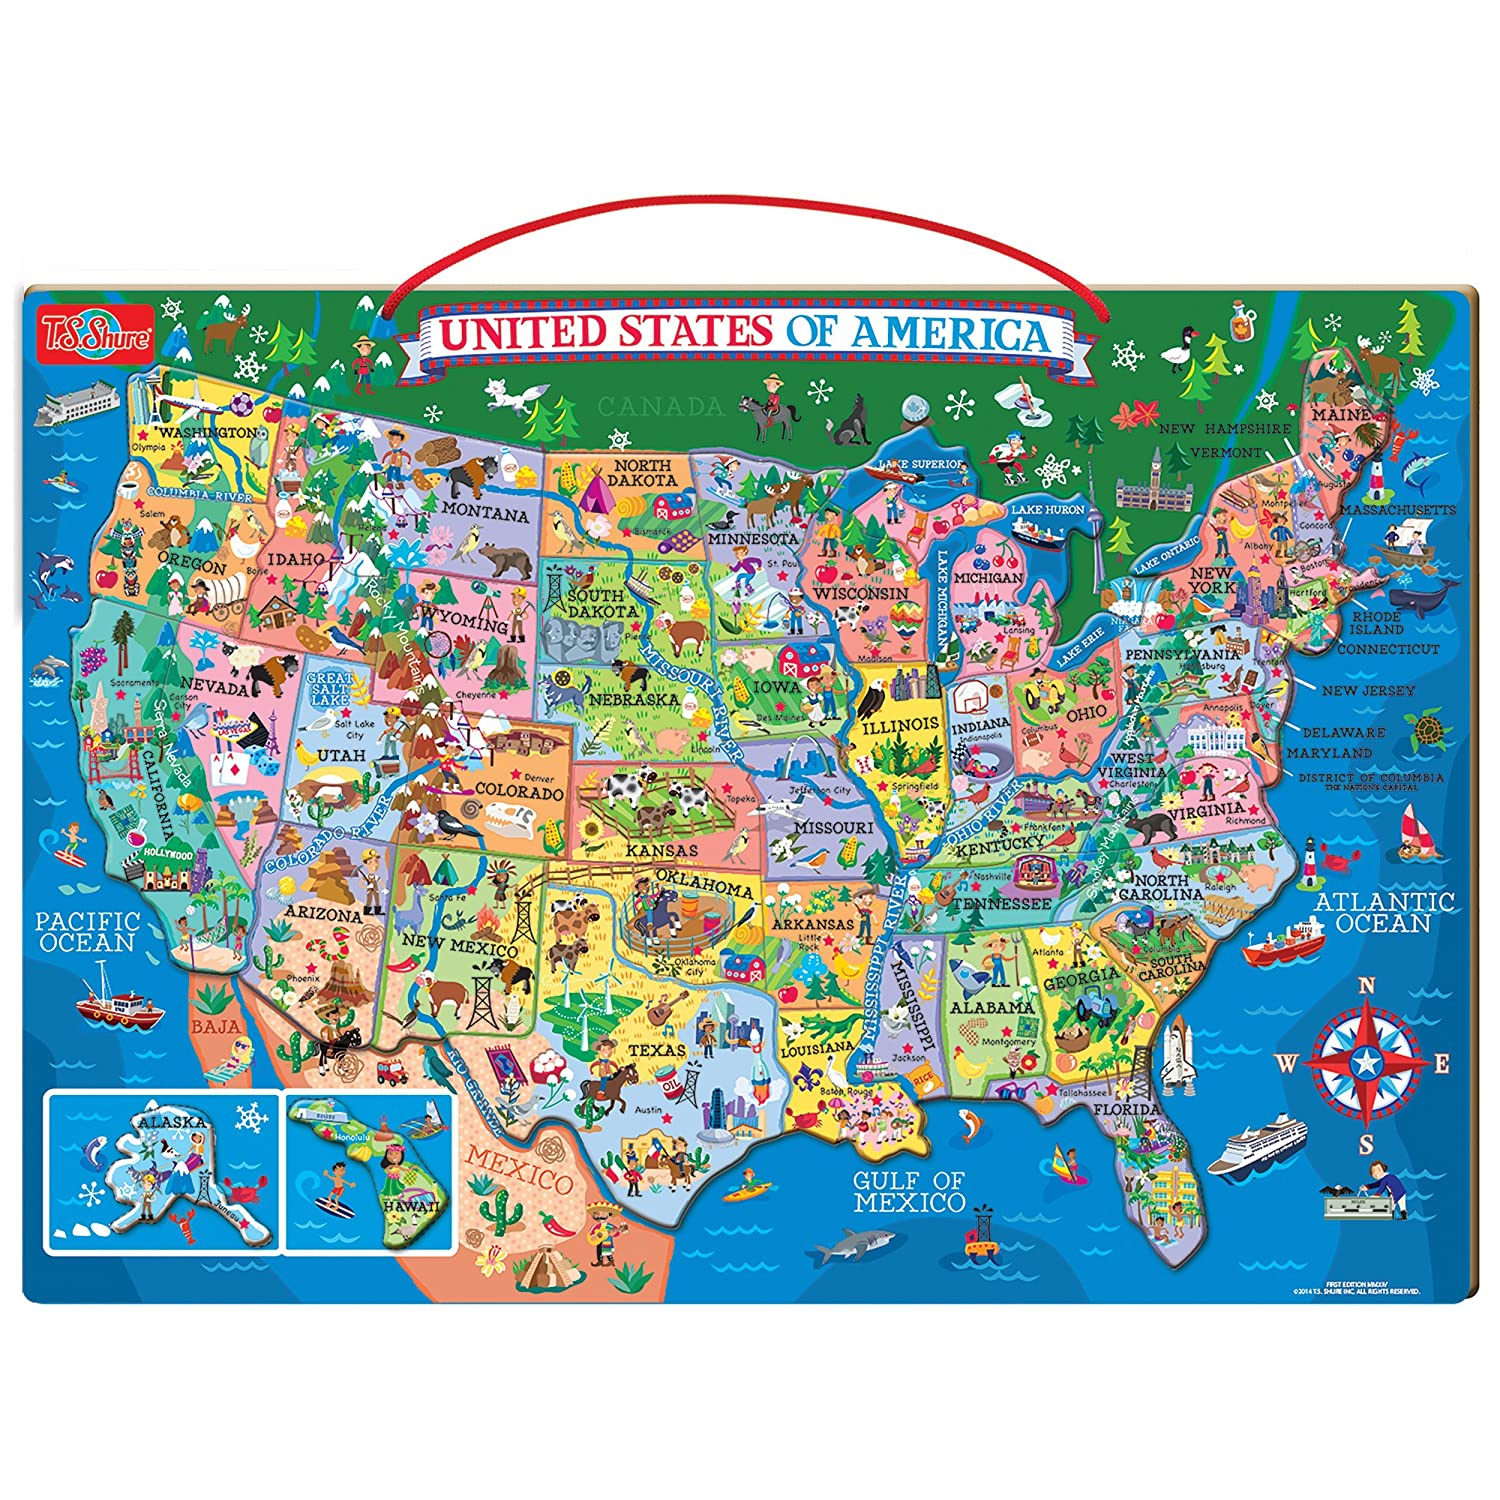 Amazoncom TS Shure Wooden Magnetic Map of the USA Puzzle Toys